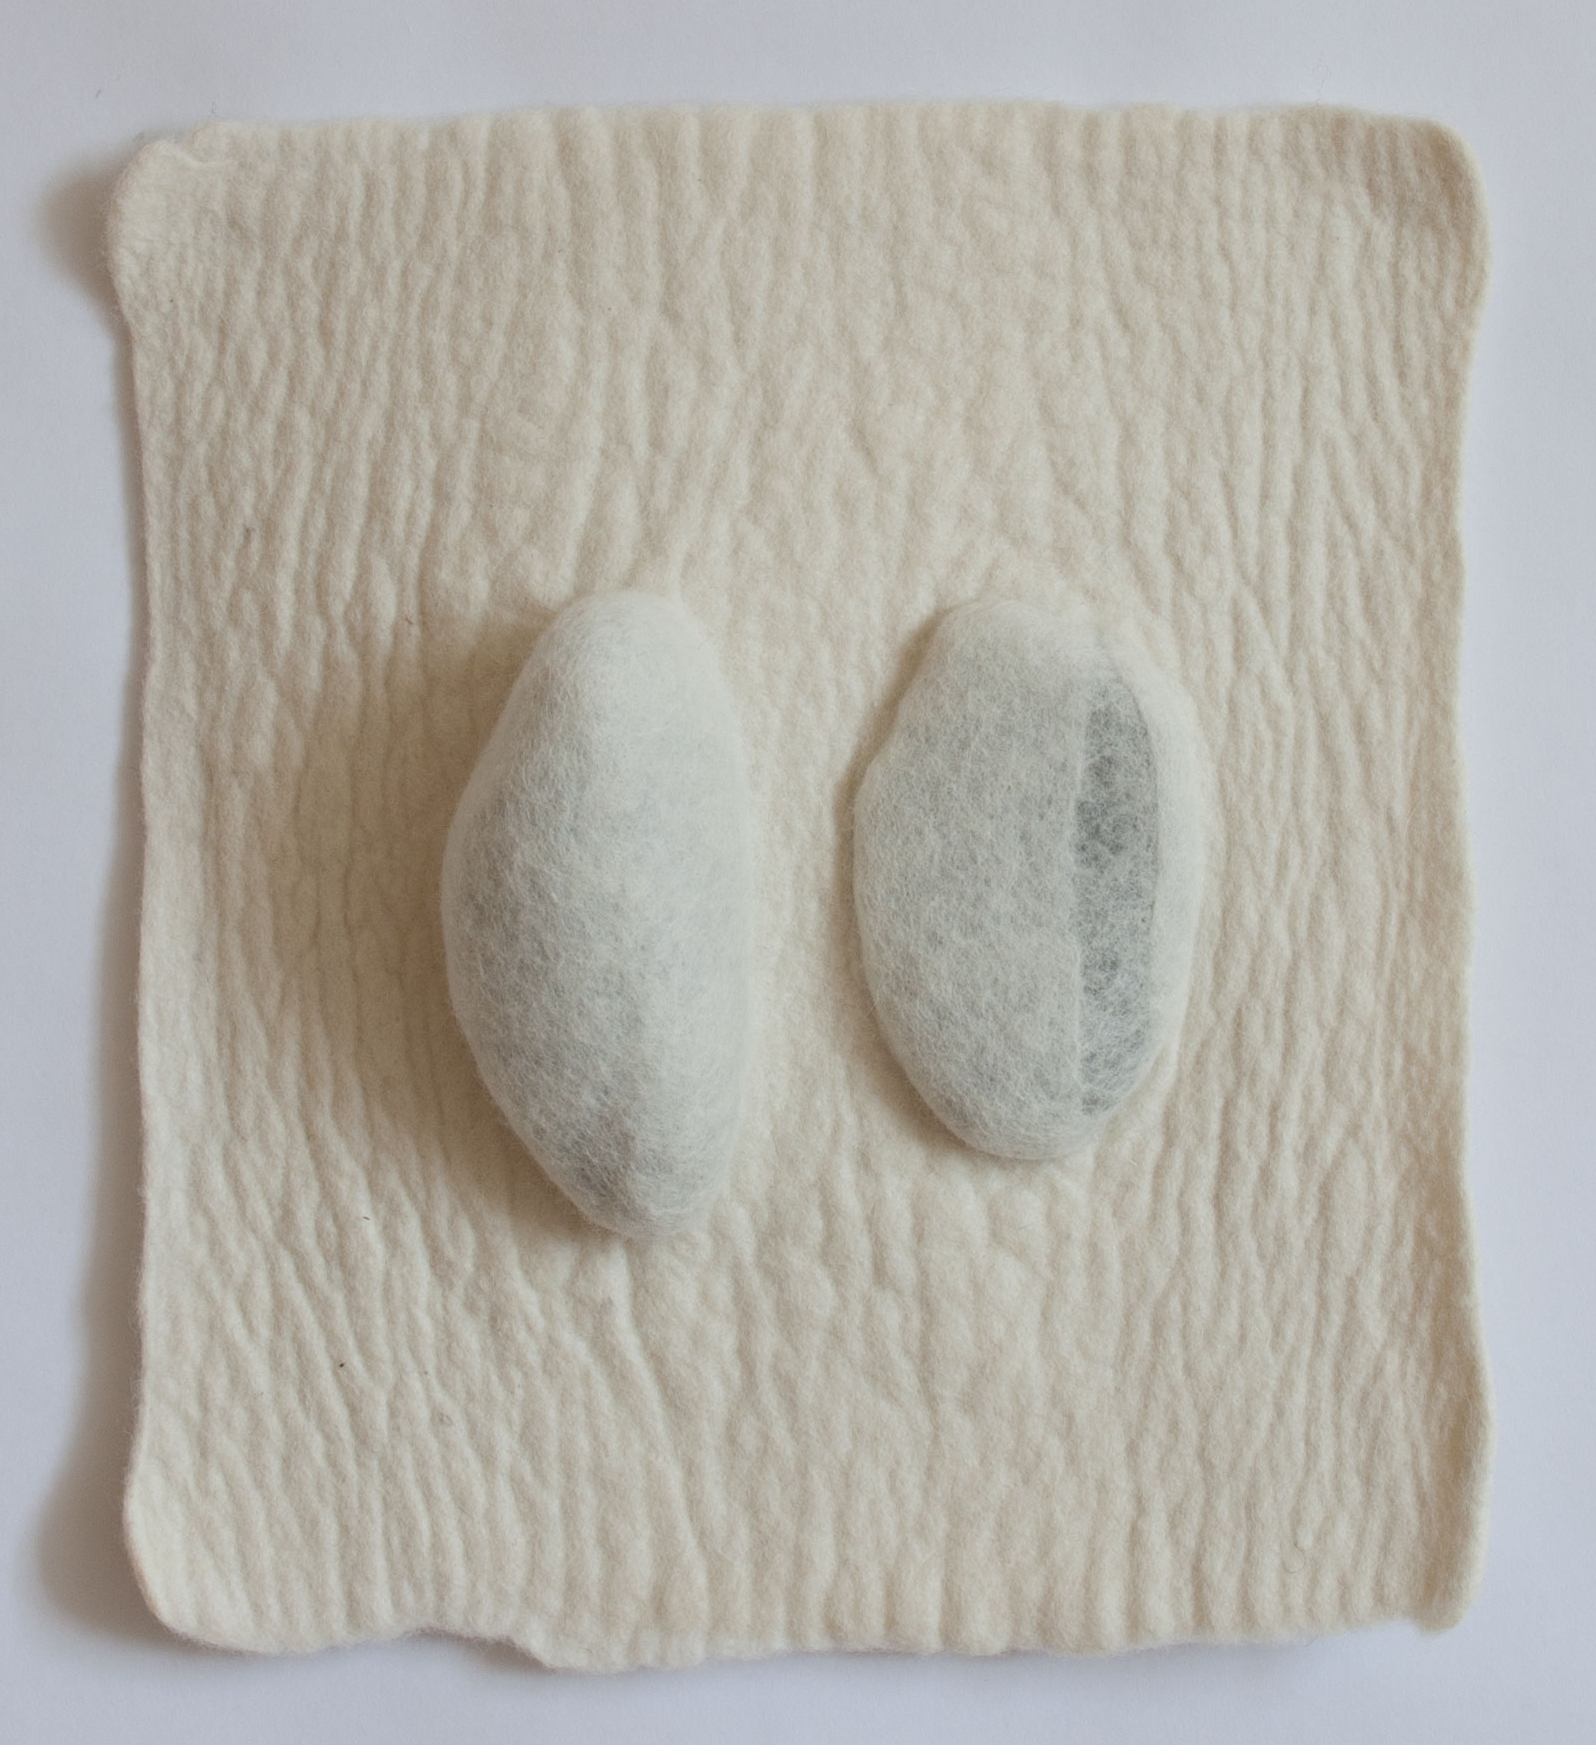 Untitled  Handfelted merino wool, rocks  2017